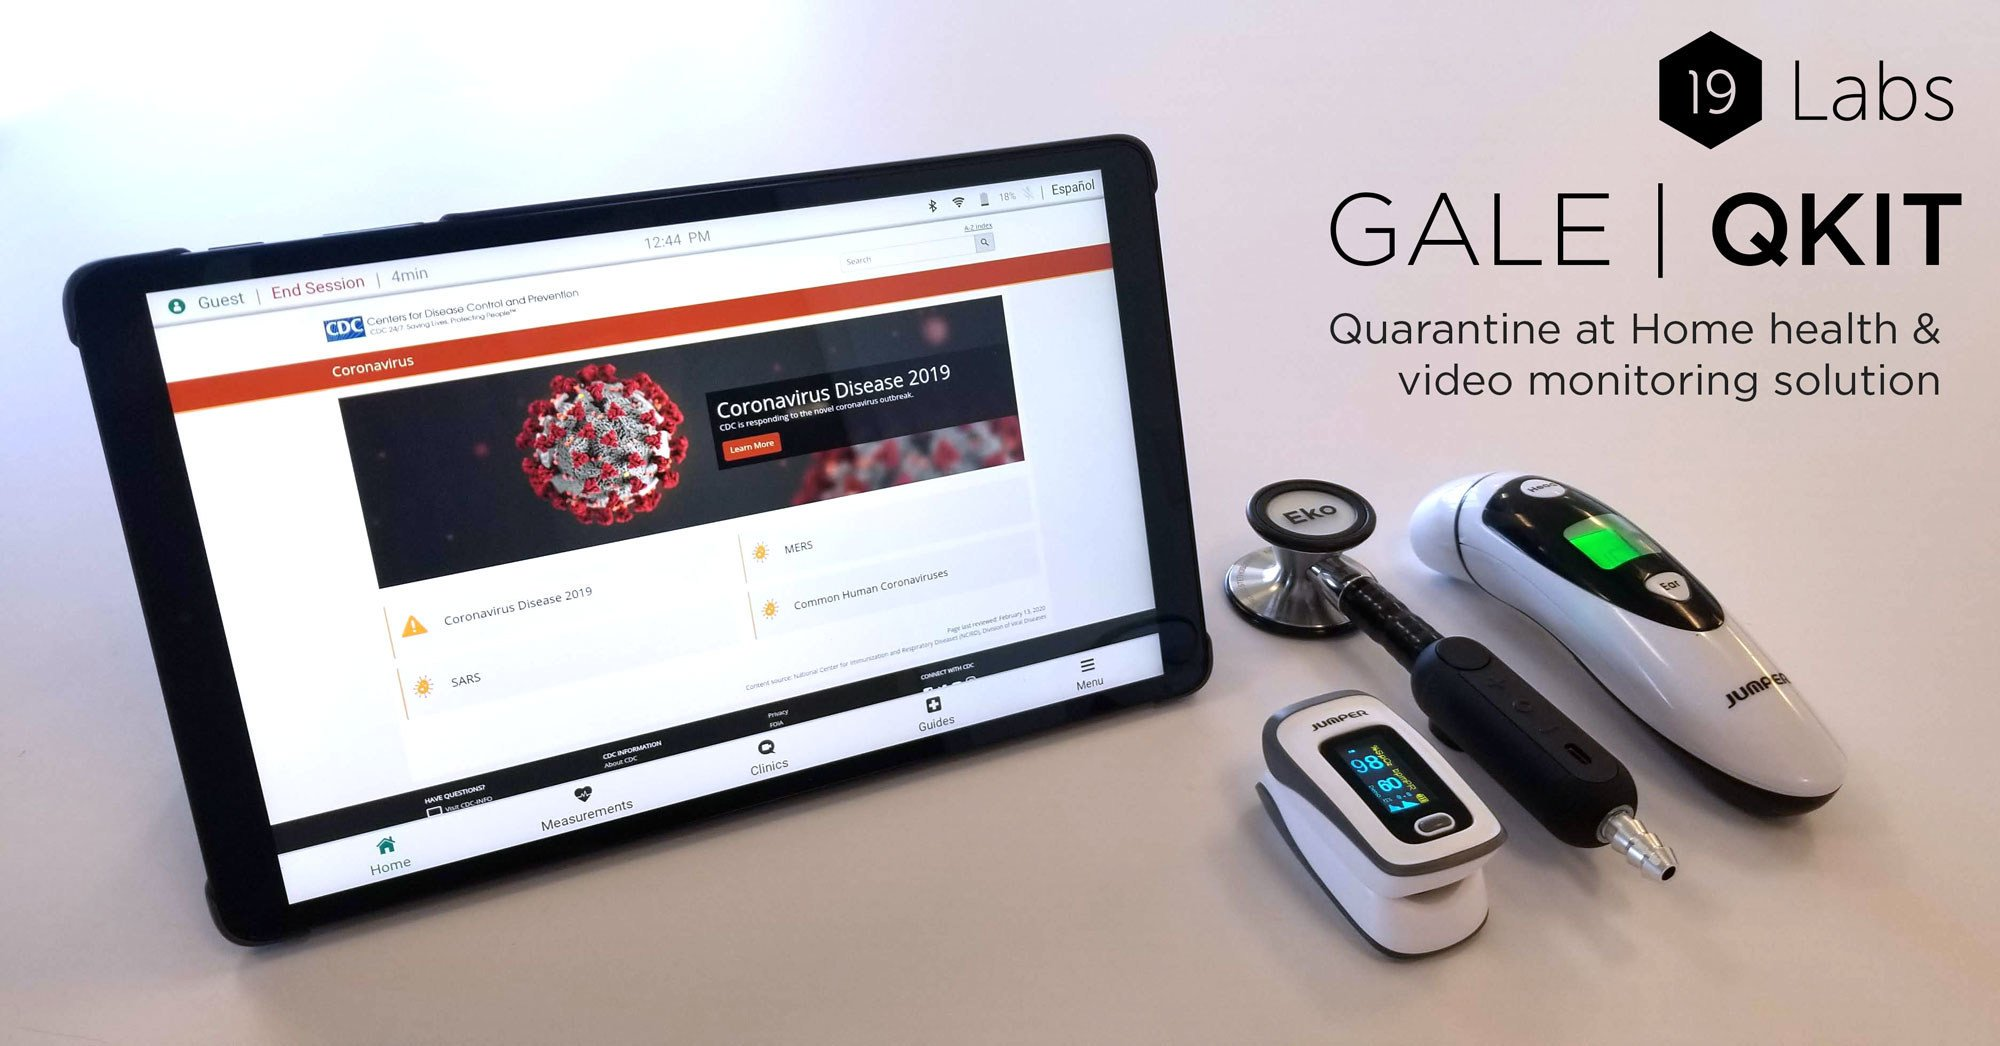 19 Labs – Quarantine monitoring & Telehealth solution